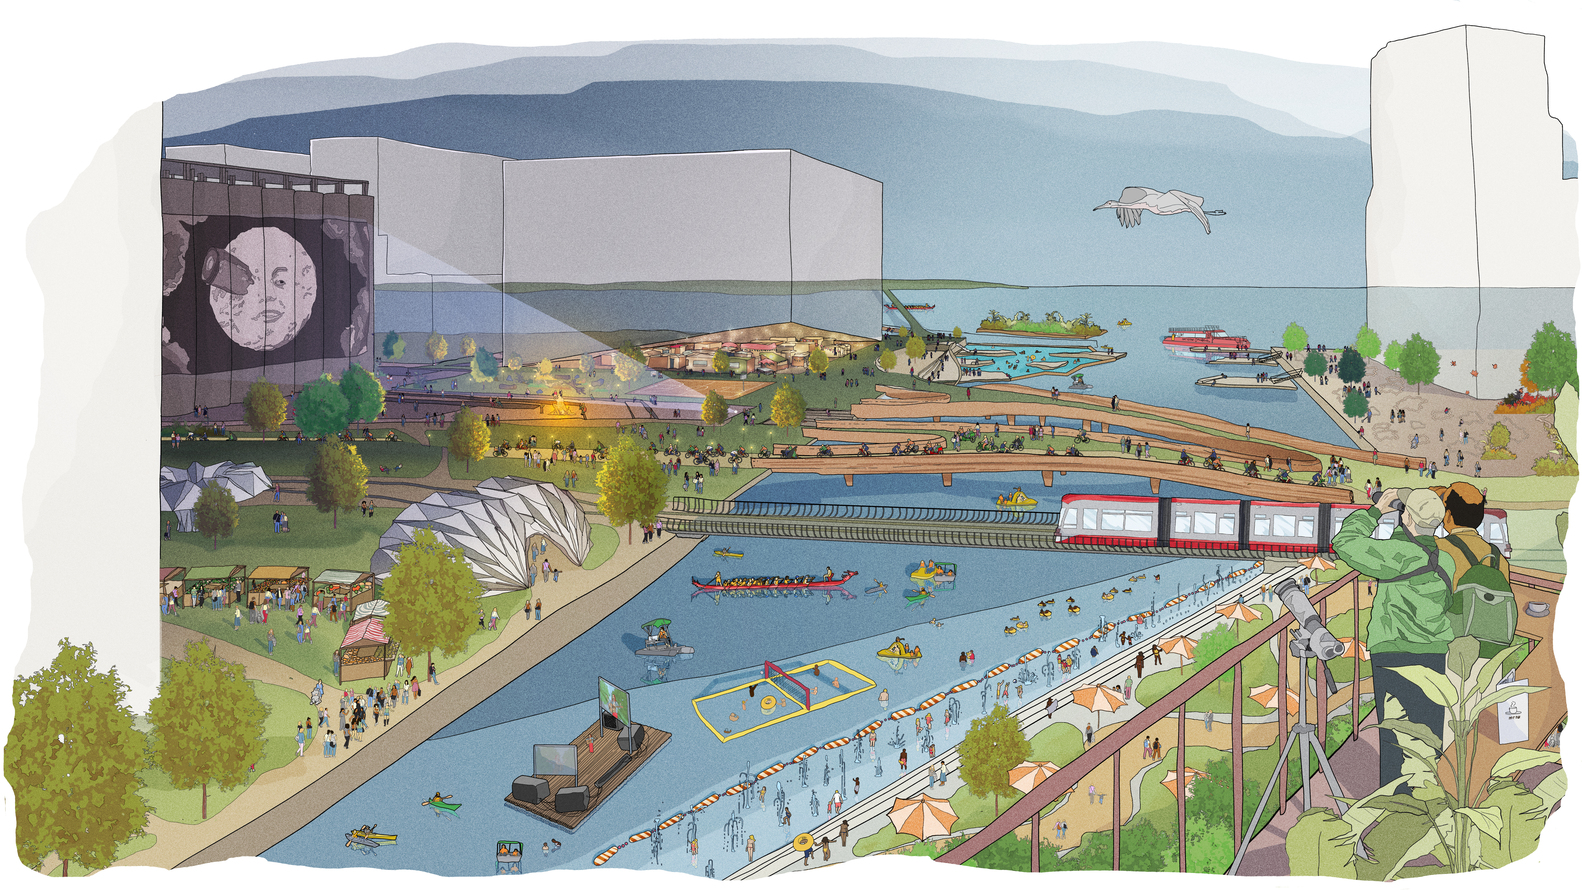 Another pic of Quayside and people and nature.